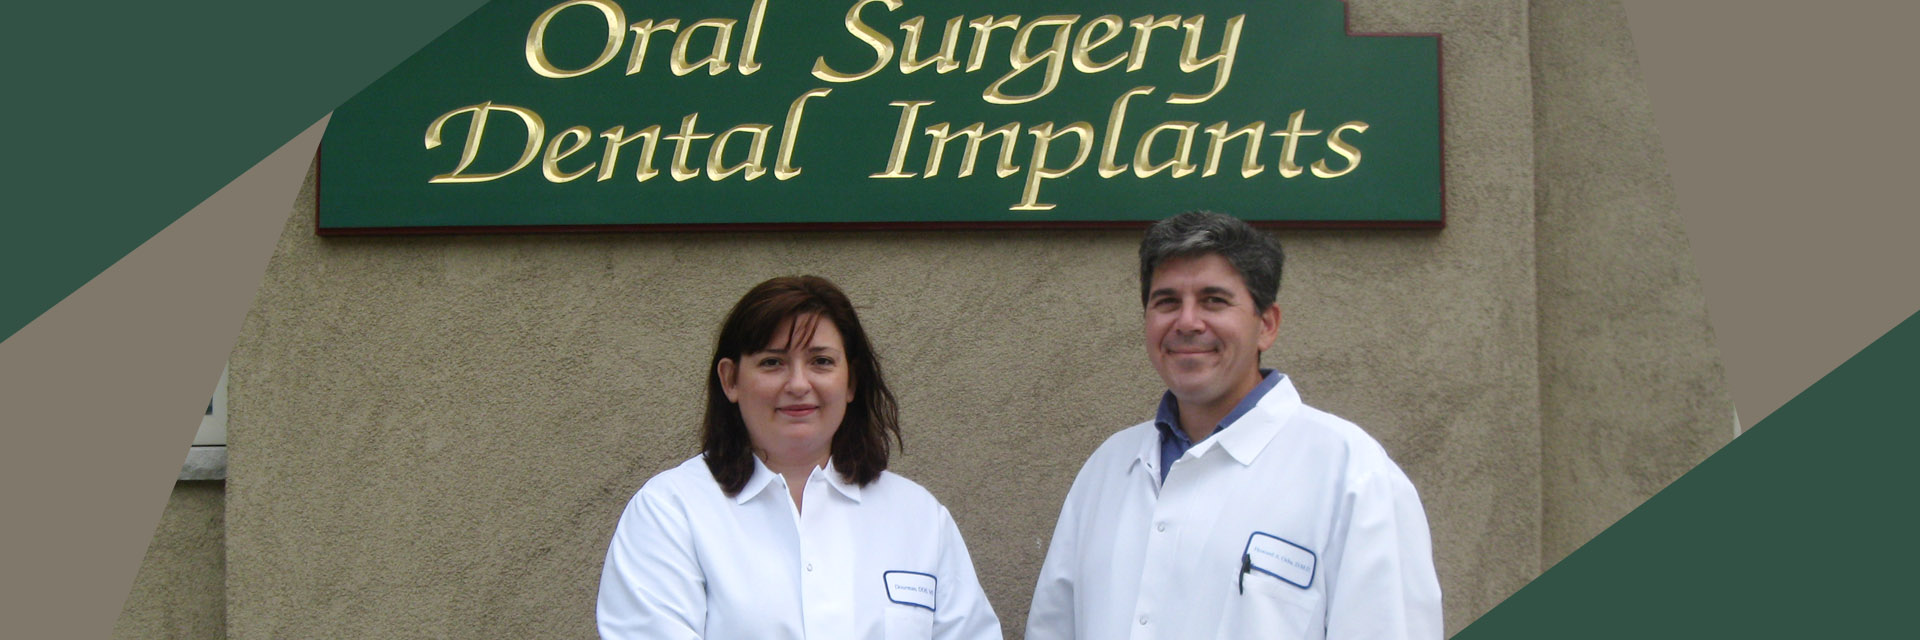 queensboro-dental-implants-flushing-ny-dr-ochs-and-dr-dourmas-in-front-of-the-office-slider-05_02